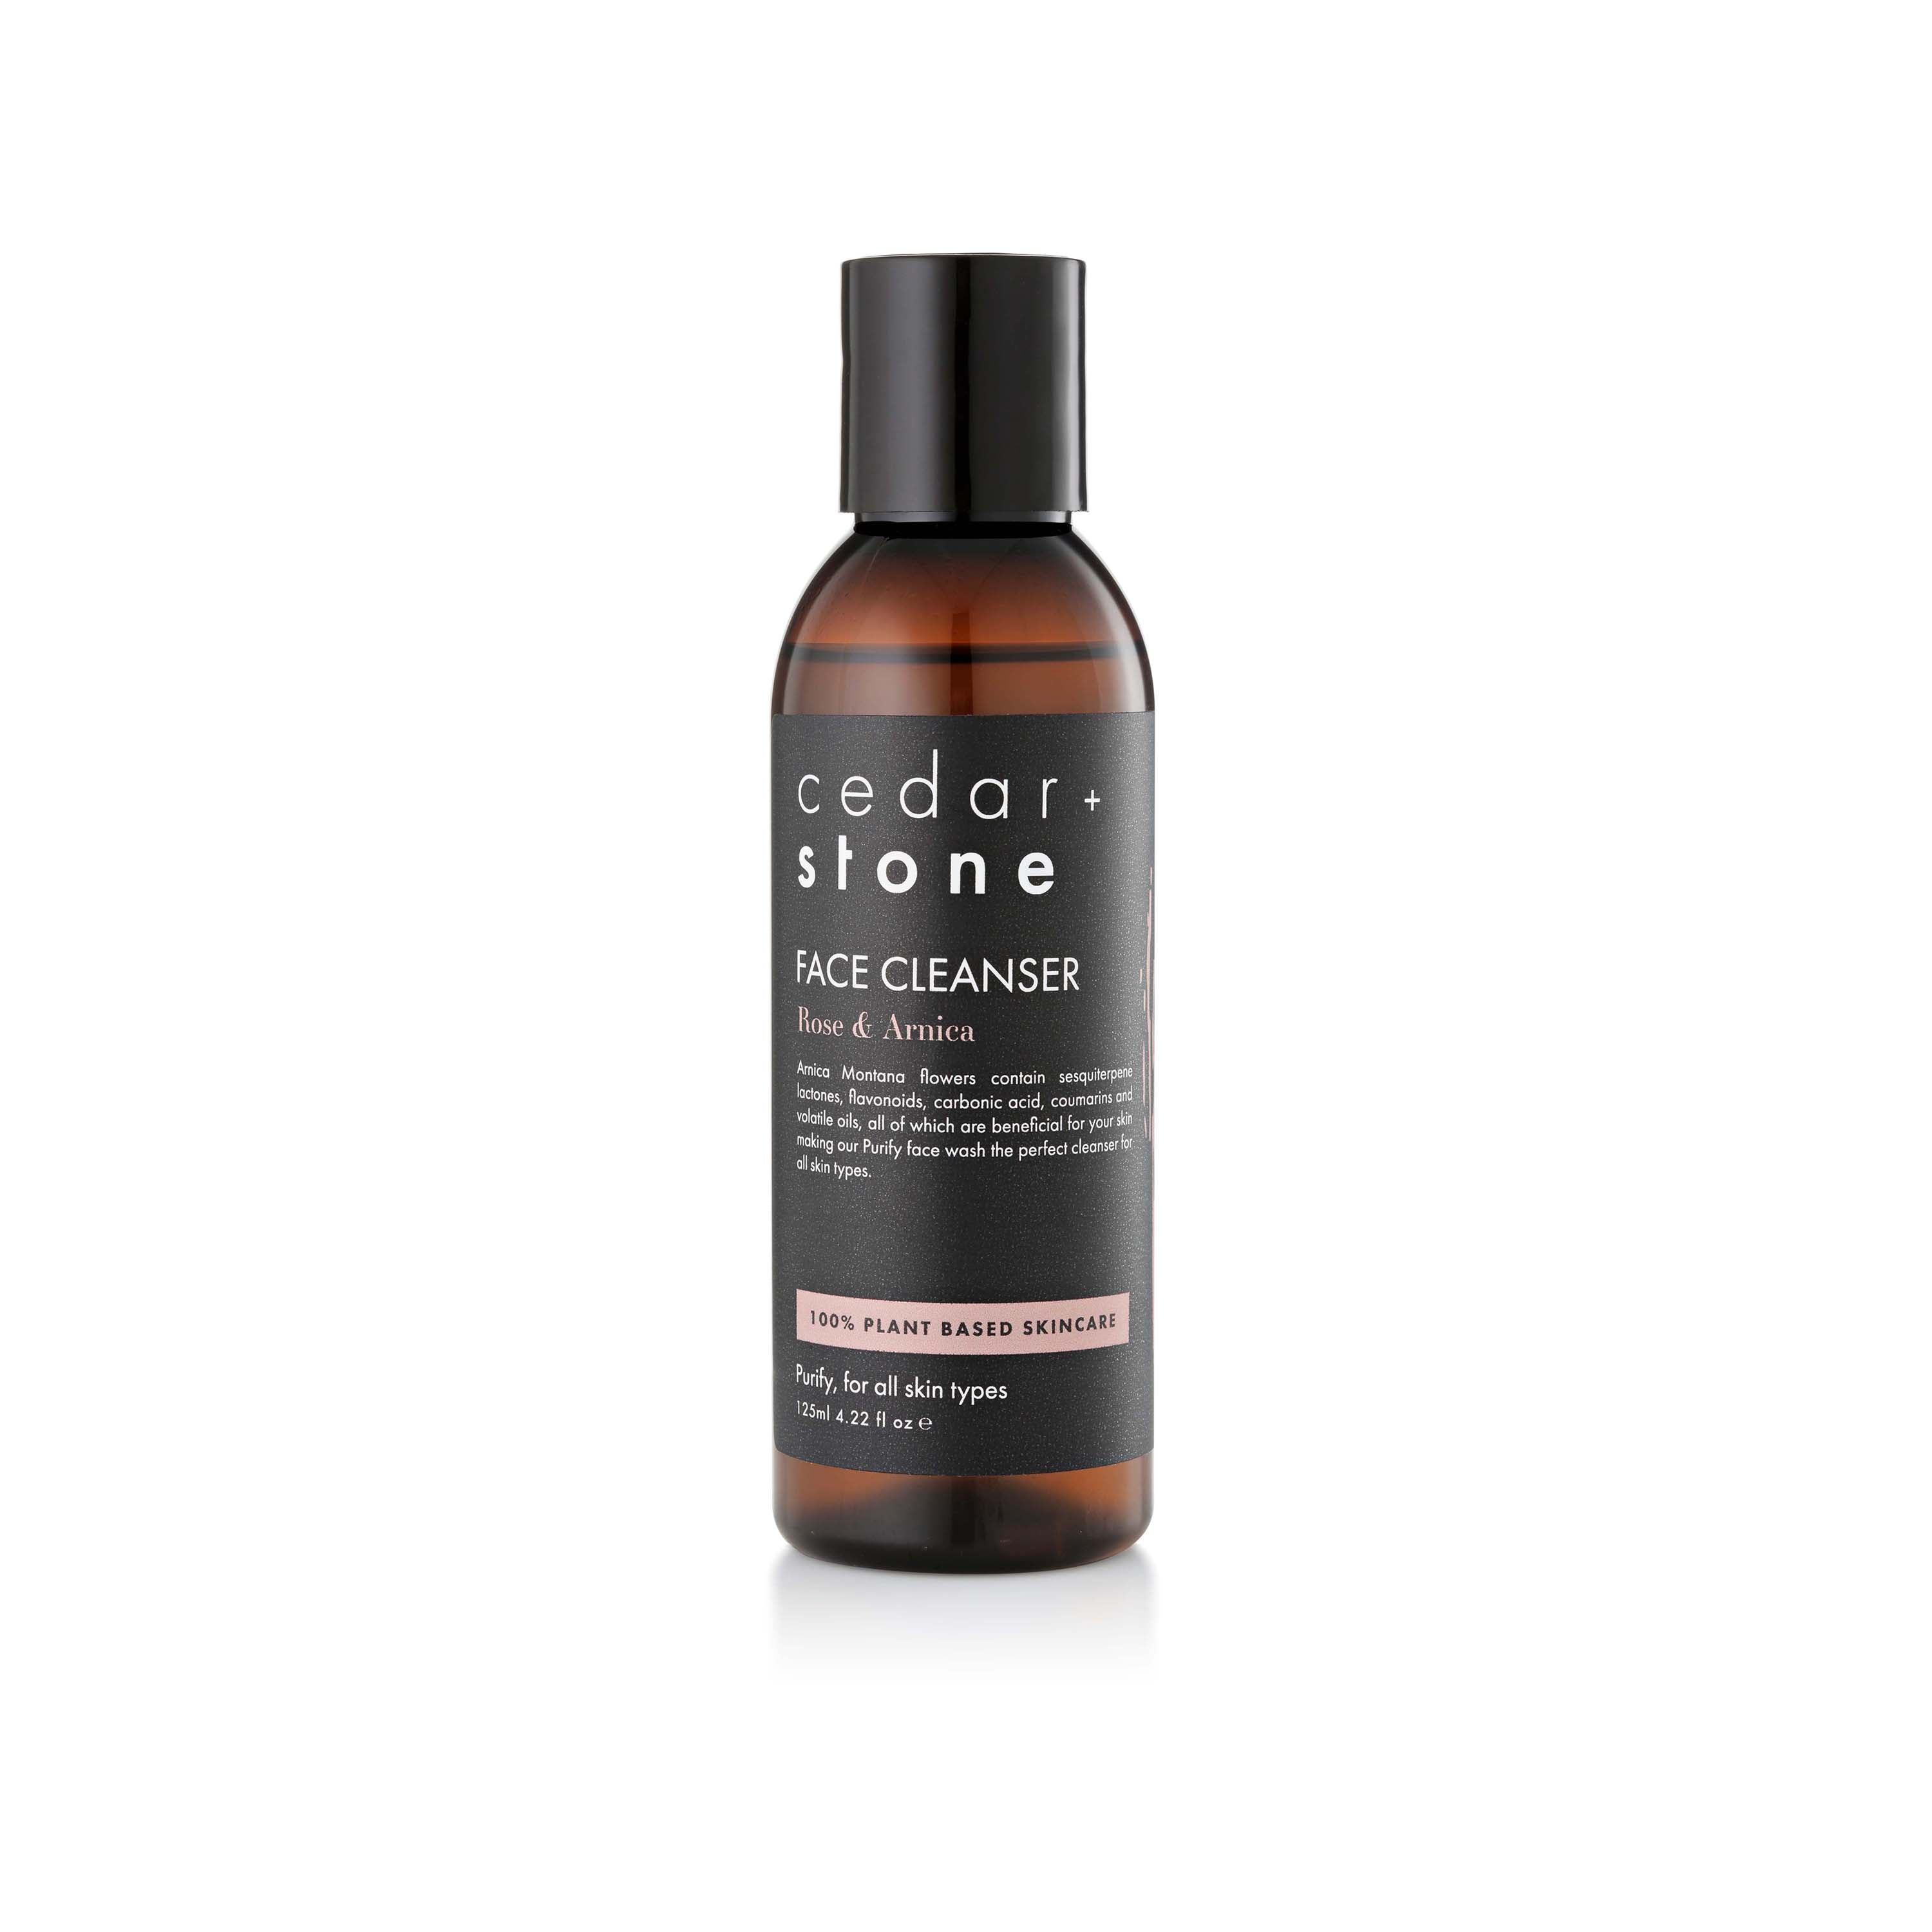 cedar+stone Rose & Arnica Face Cleanser 玫瑰山金車花卸妝潔面乳